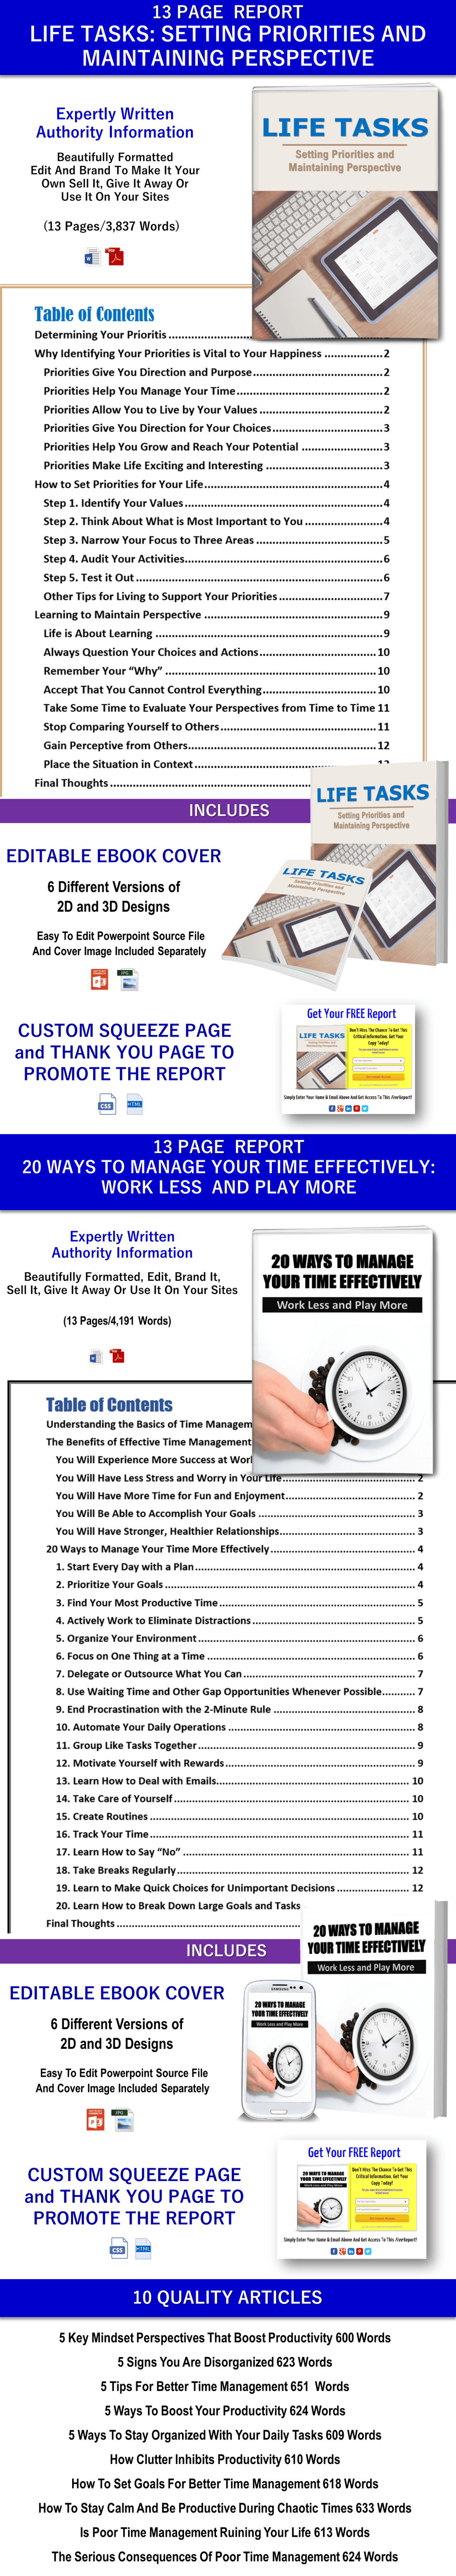 20 Ways To Manage Your Time Effectively Report, Life Tasks: Setting Priorities And Maintaining Perspective Report and 10 Articles PLR